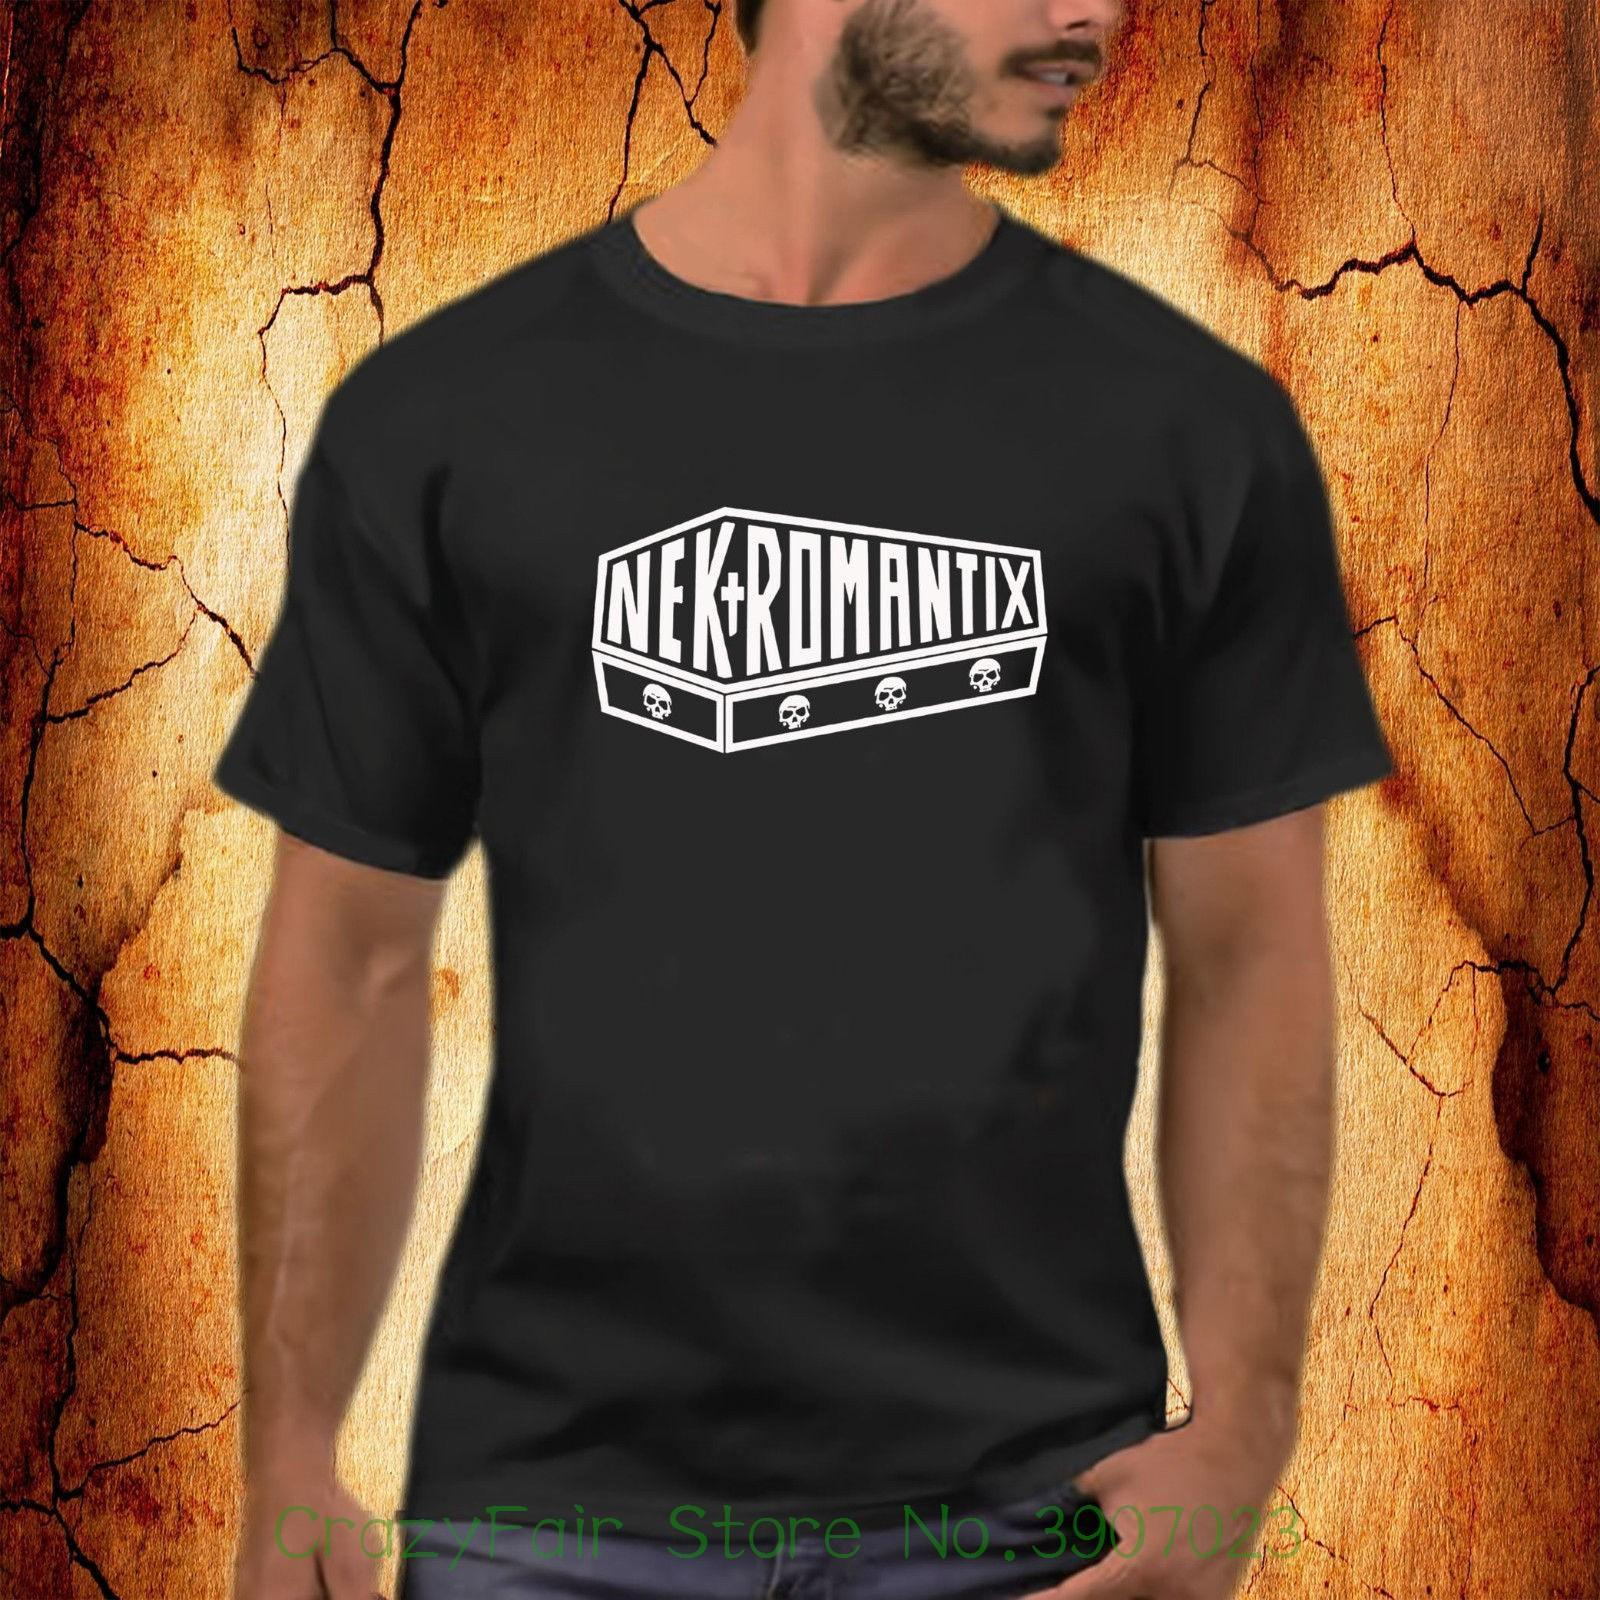 c38f772955cb3b Nekromantix Rock Band Logo Black T Shirt S 2xl Top Tee 100% Cotton Humor Men  Crewneck Tee Shirts White Designer T Shirts Clever T Shirt From Jie030, ...